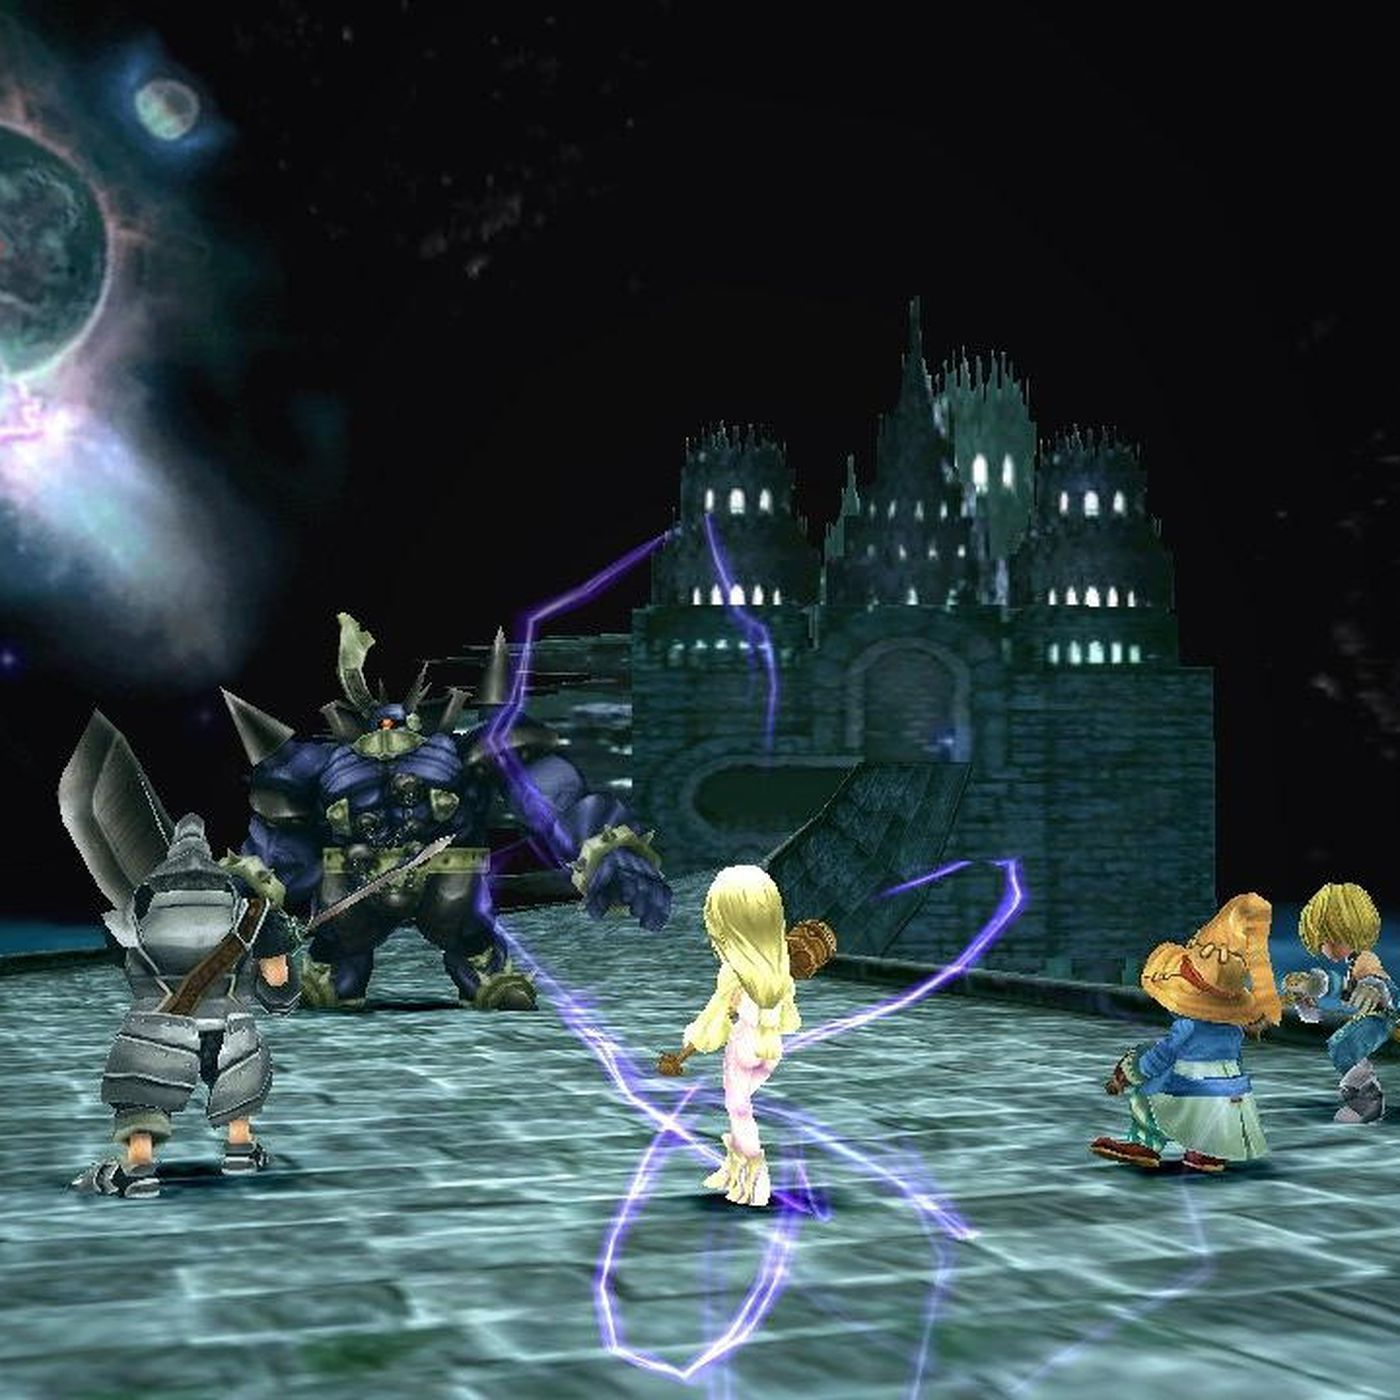 Final Fantasy 7 coming to Nintendo Switch in March, FF9 out